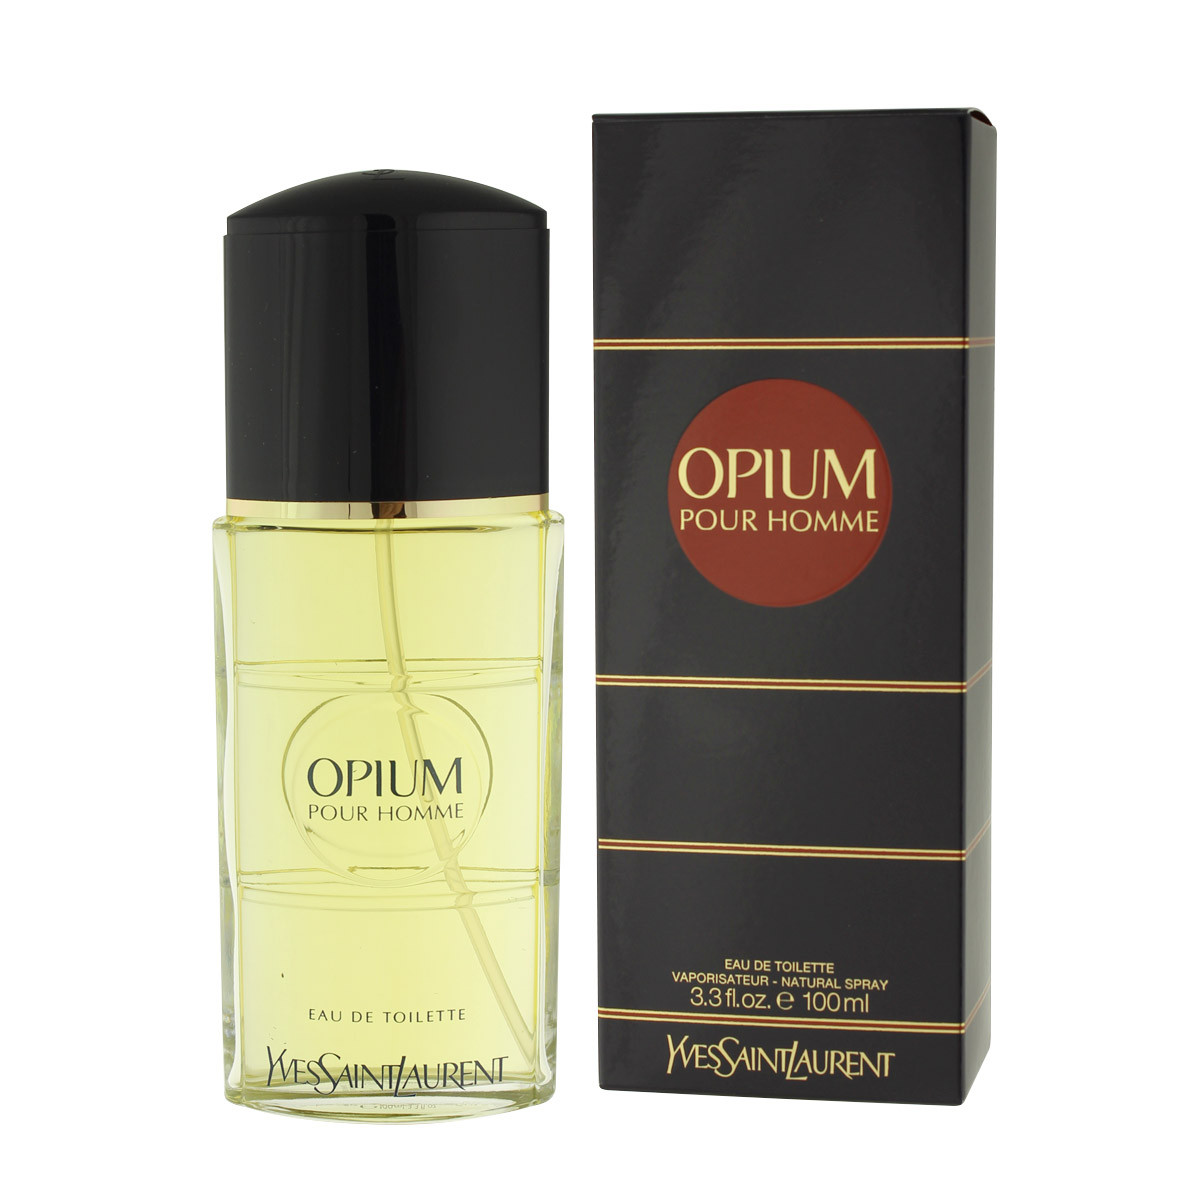 yves saint laurent opium pour homme eau de toilette 100 ml. Black Bedroom Furniture Sets. Home Design Ideas